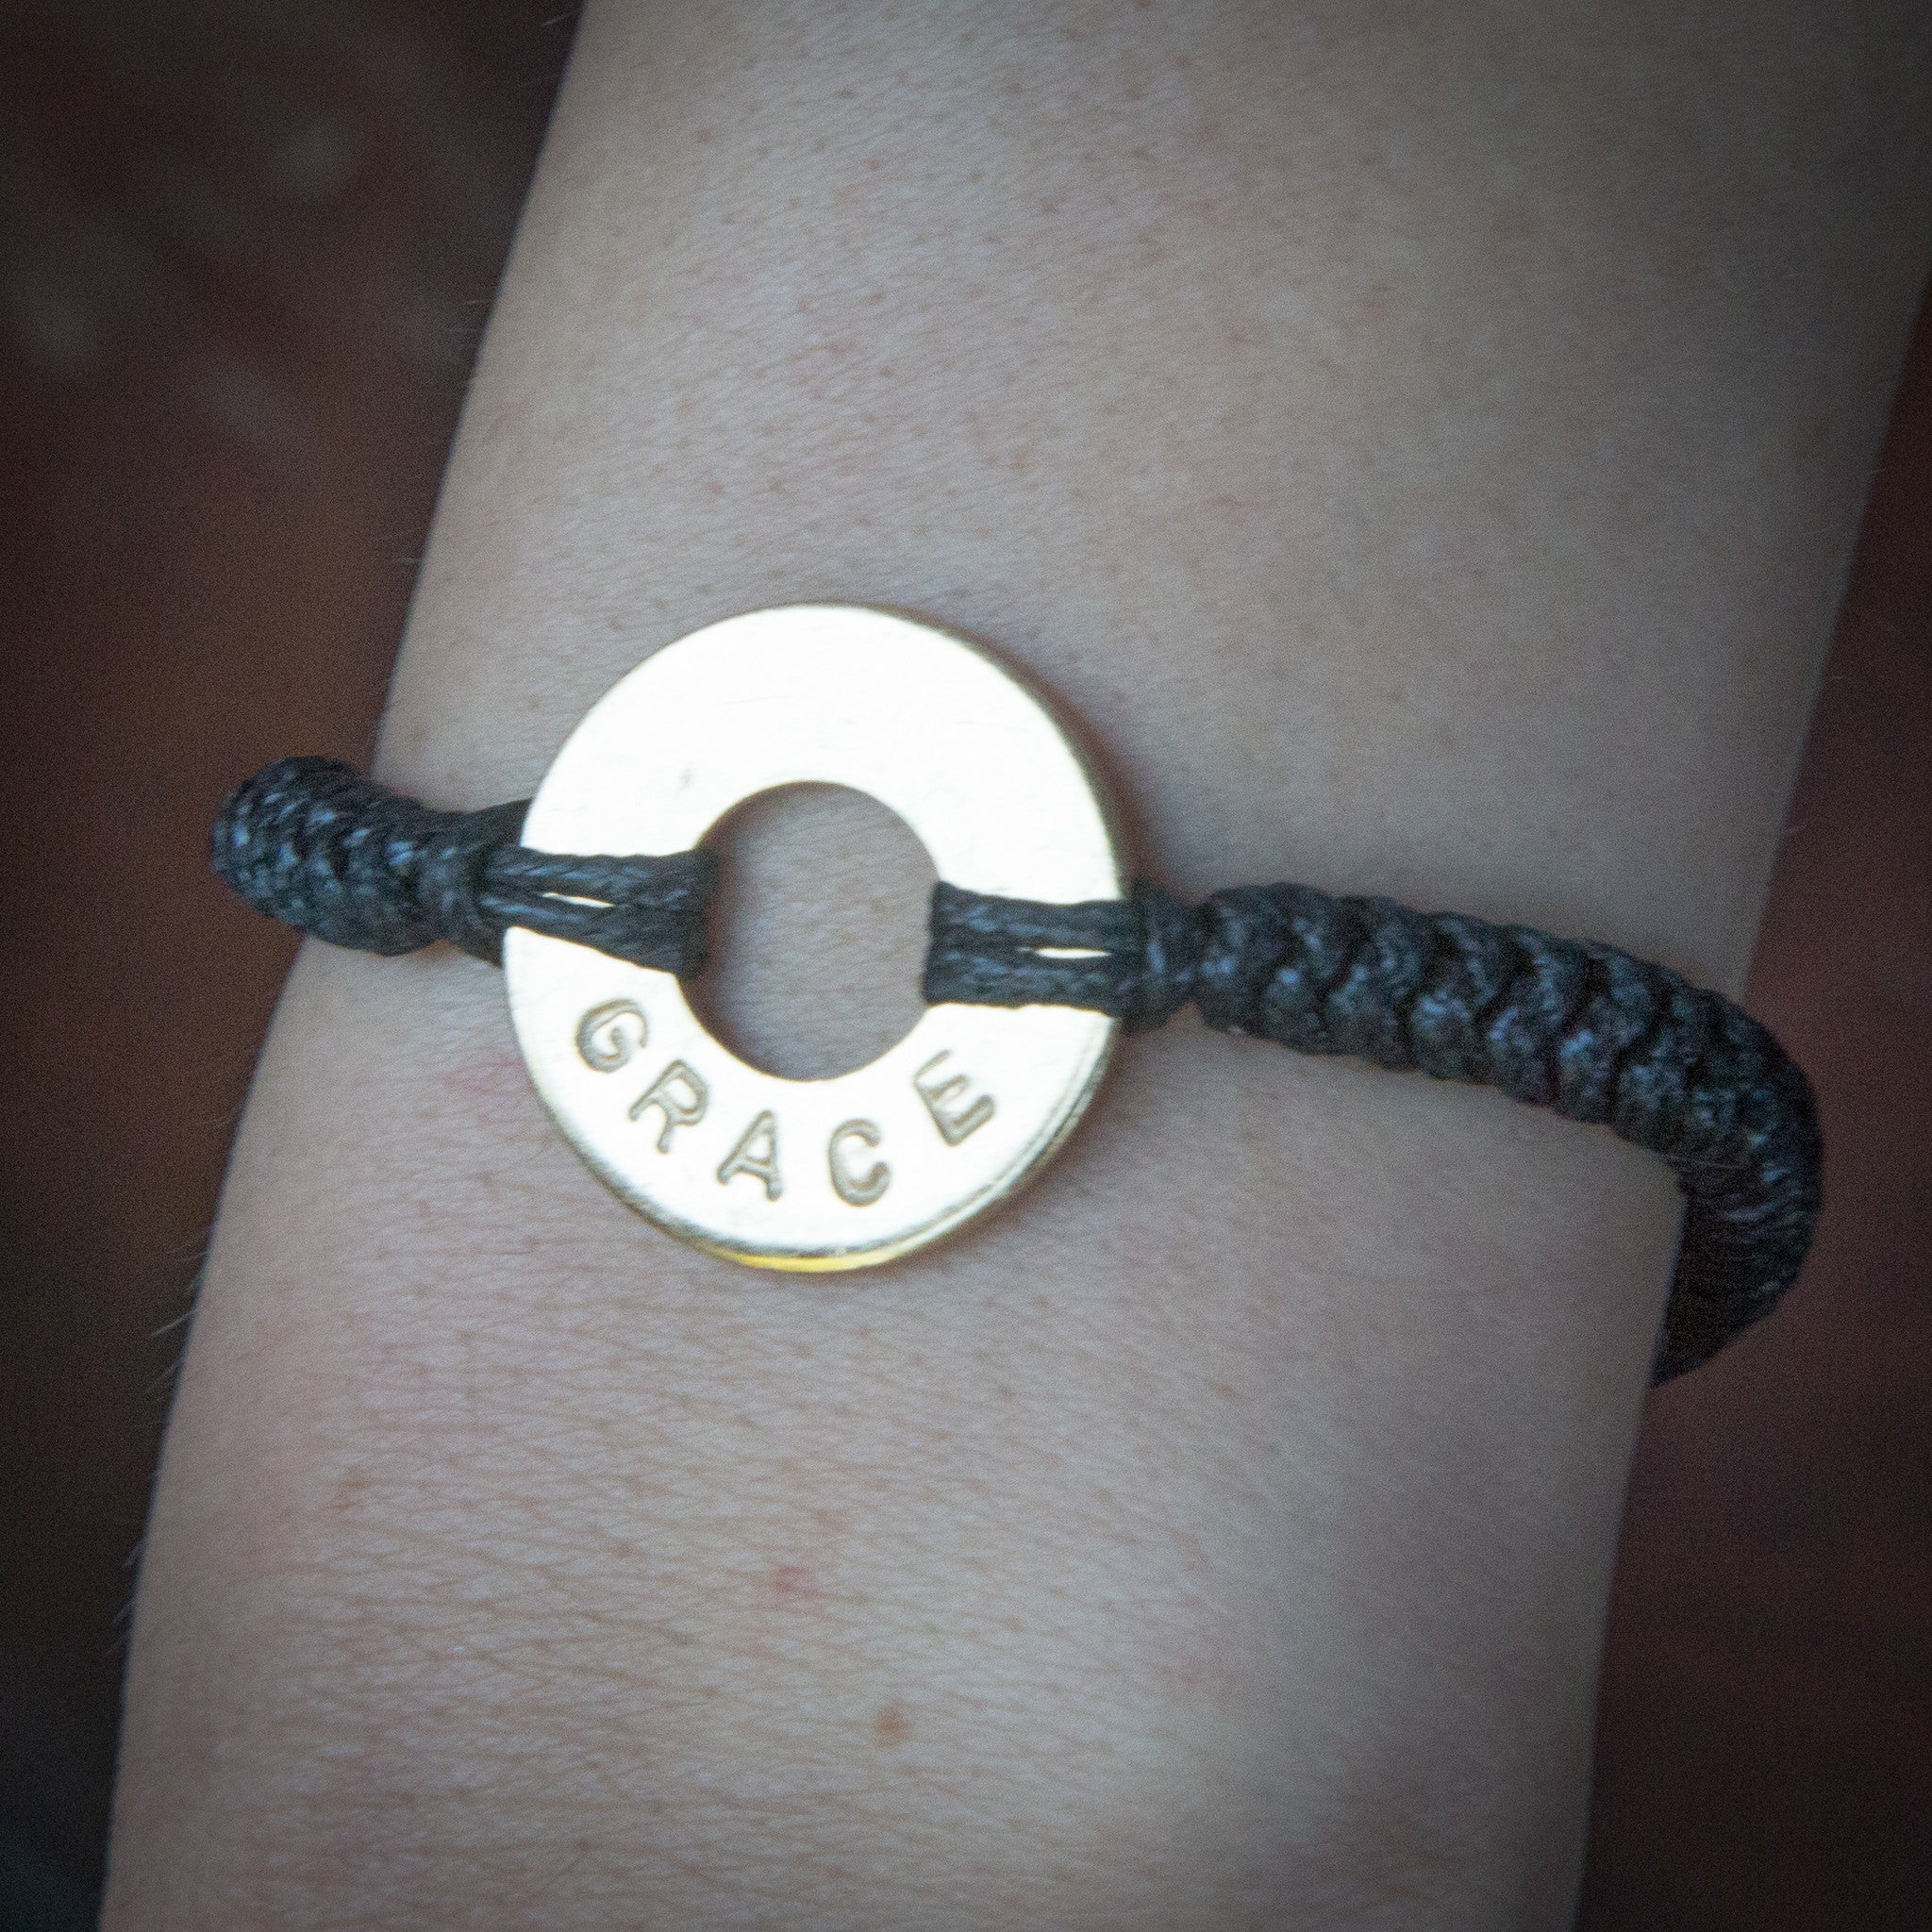 MyIntent Custom Round Bracelet Silver Token Black String with word GRACE